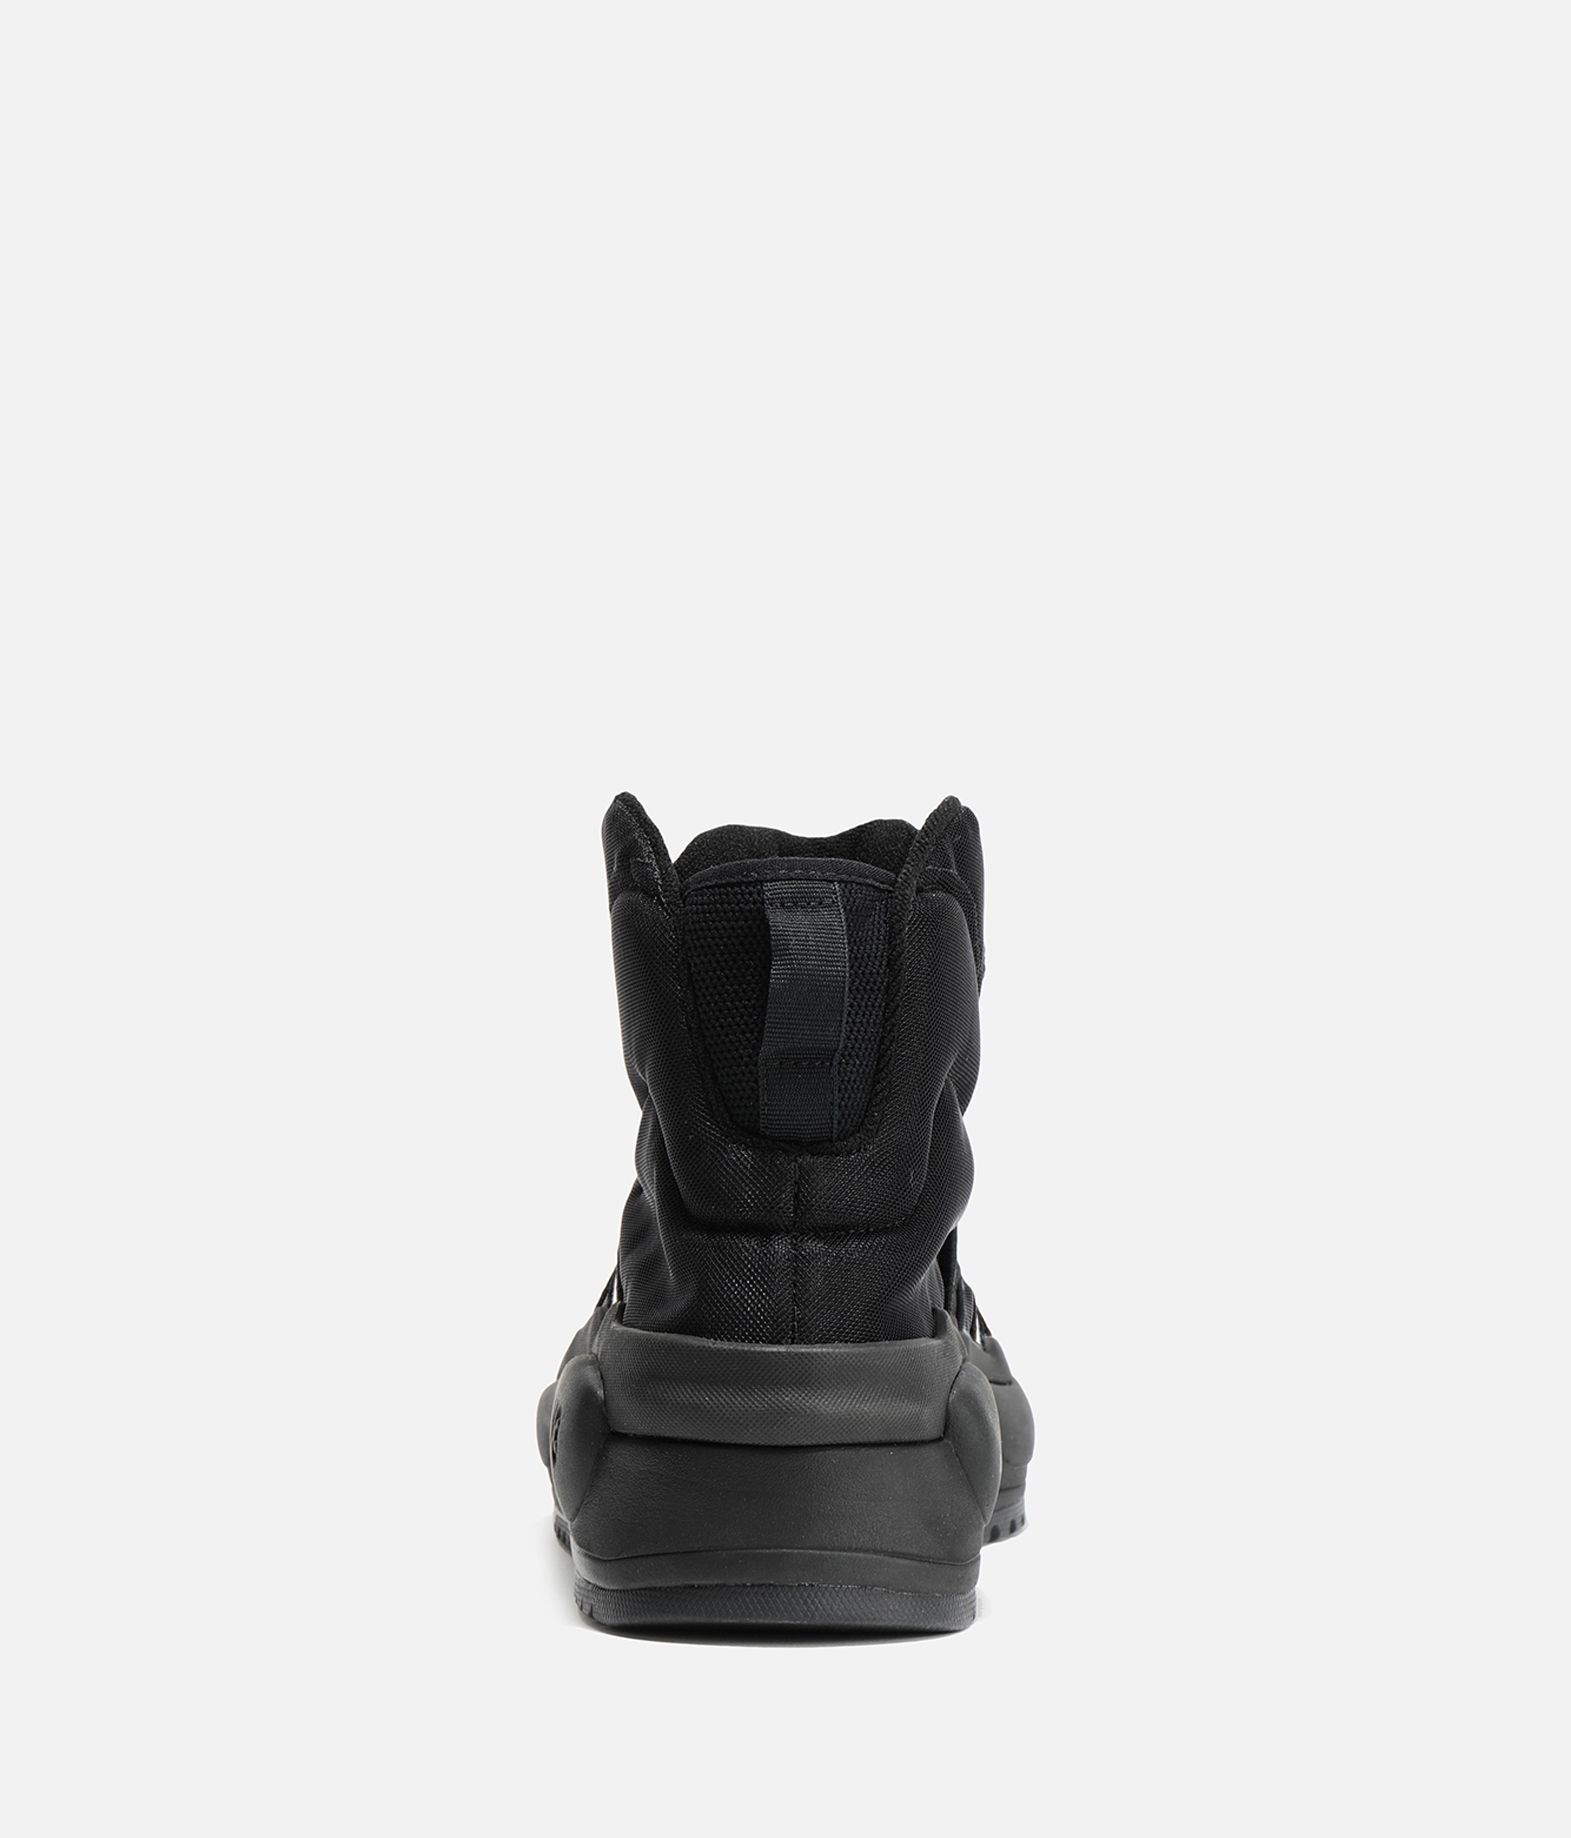 Y-3 Y-3 Hokori Sneakers Woman r